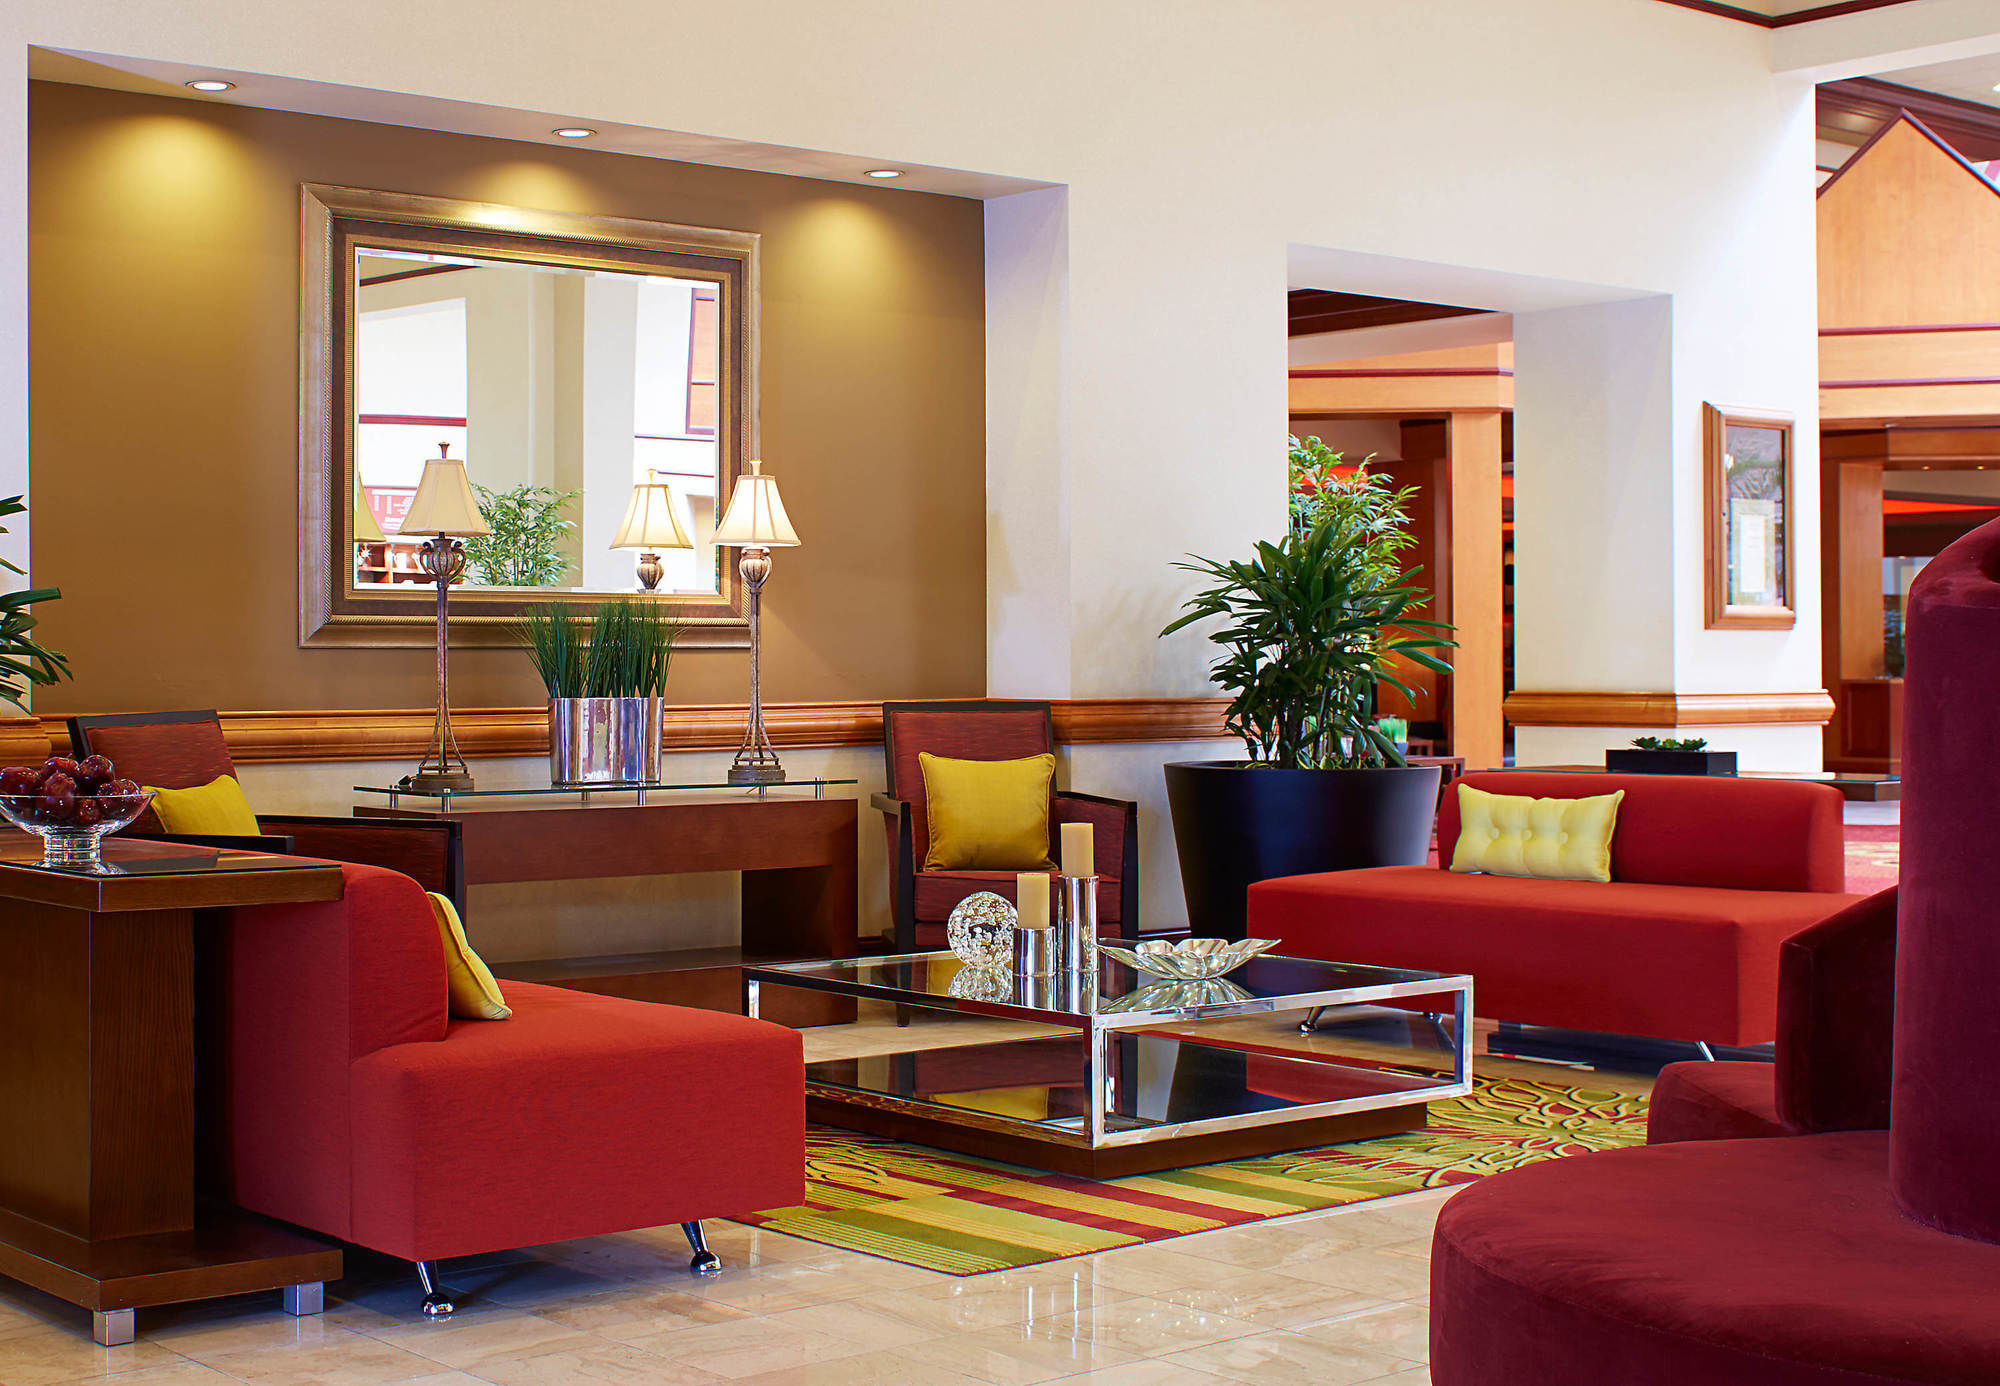 West chester hotel coupons for west chester ohio - Hilton garden inn west chester ohio ...